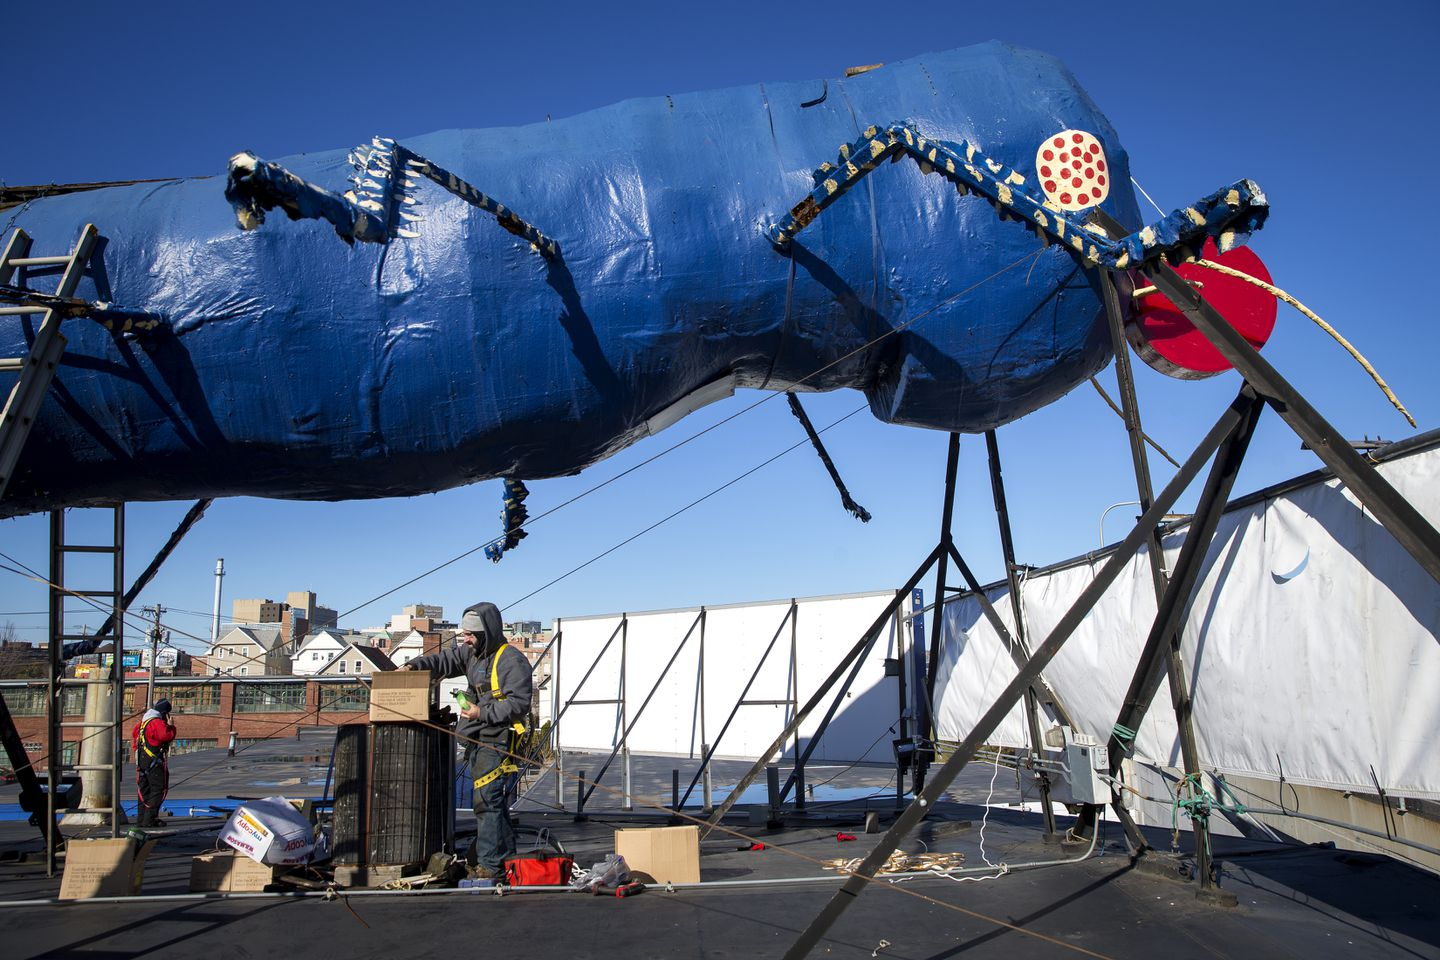 How A Giant Blue Termite Became The Symbol Of Christmas Cheer In Rhode Island The Boston Globe